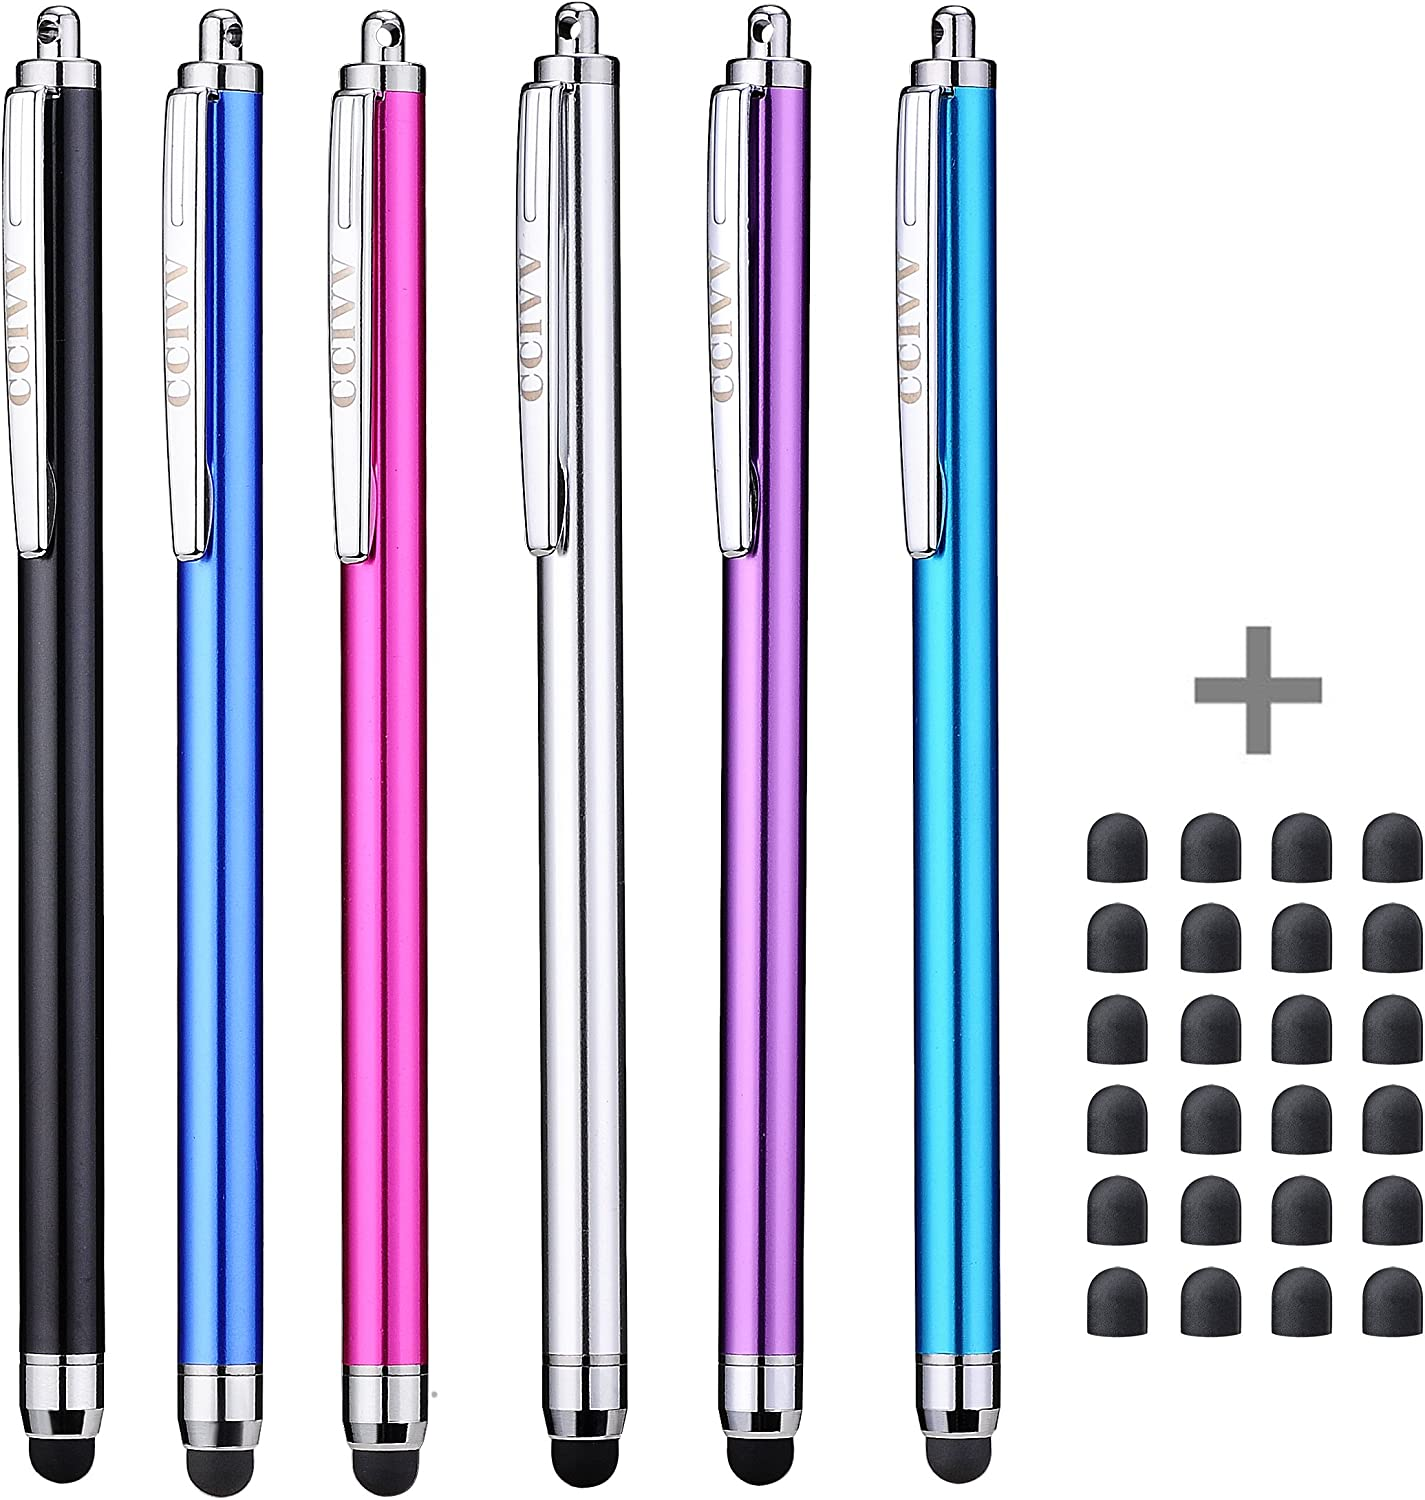 Slim Stylus, CCIVV Stylus Pens for Touch Screens Including Apple iPad Air 2, iPad Pro, iPad Mini 4, iPhone 8/7/6s, iPhone 8/7/6s Plus, Kindle Fire HD, Samsung Galaxy Tab and Nexus 10(Pack of 6)